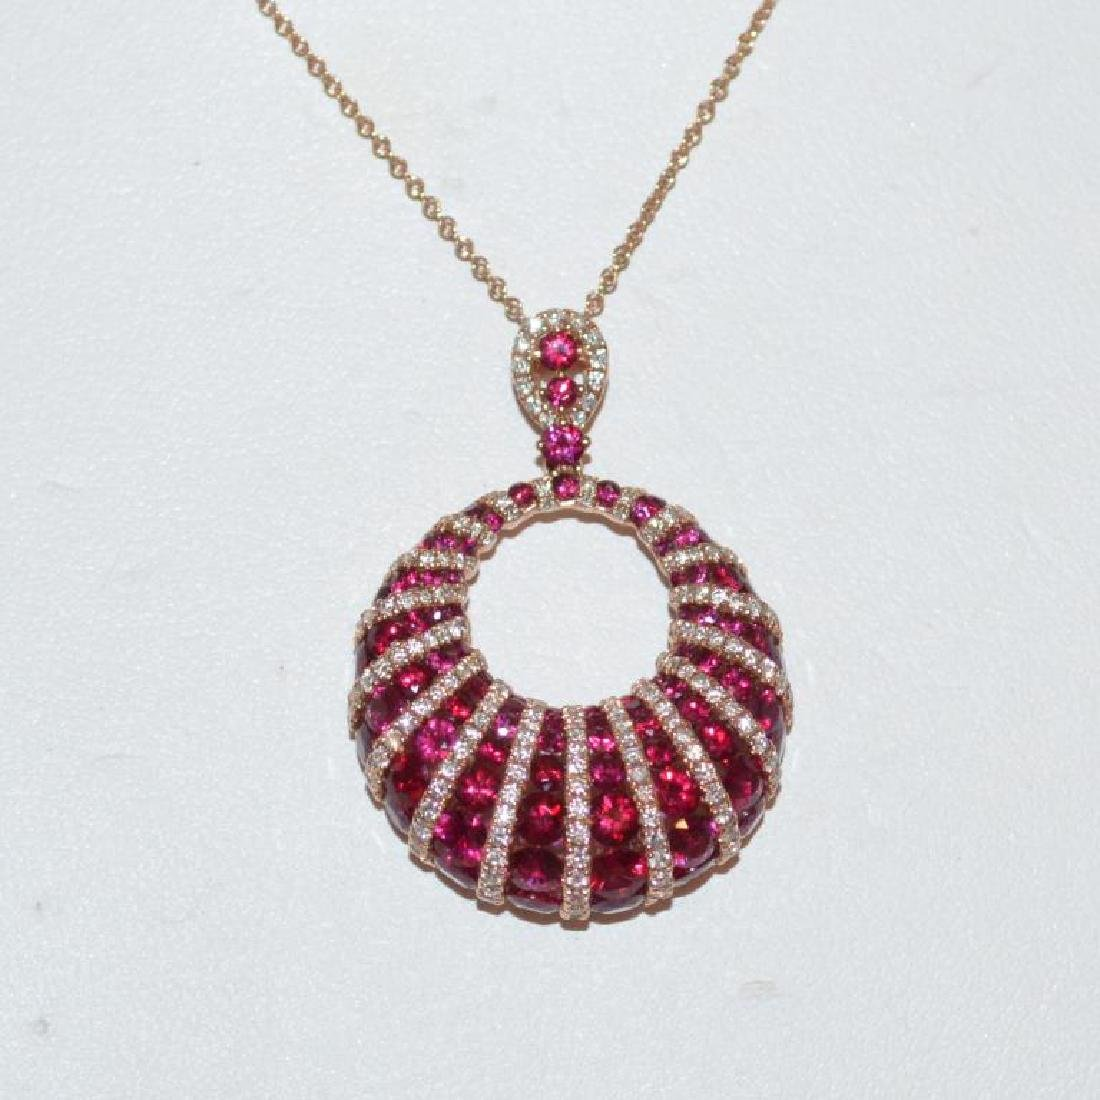 14kt rose gold ruby and diamond pendant by Parviz